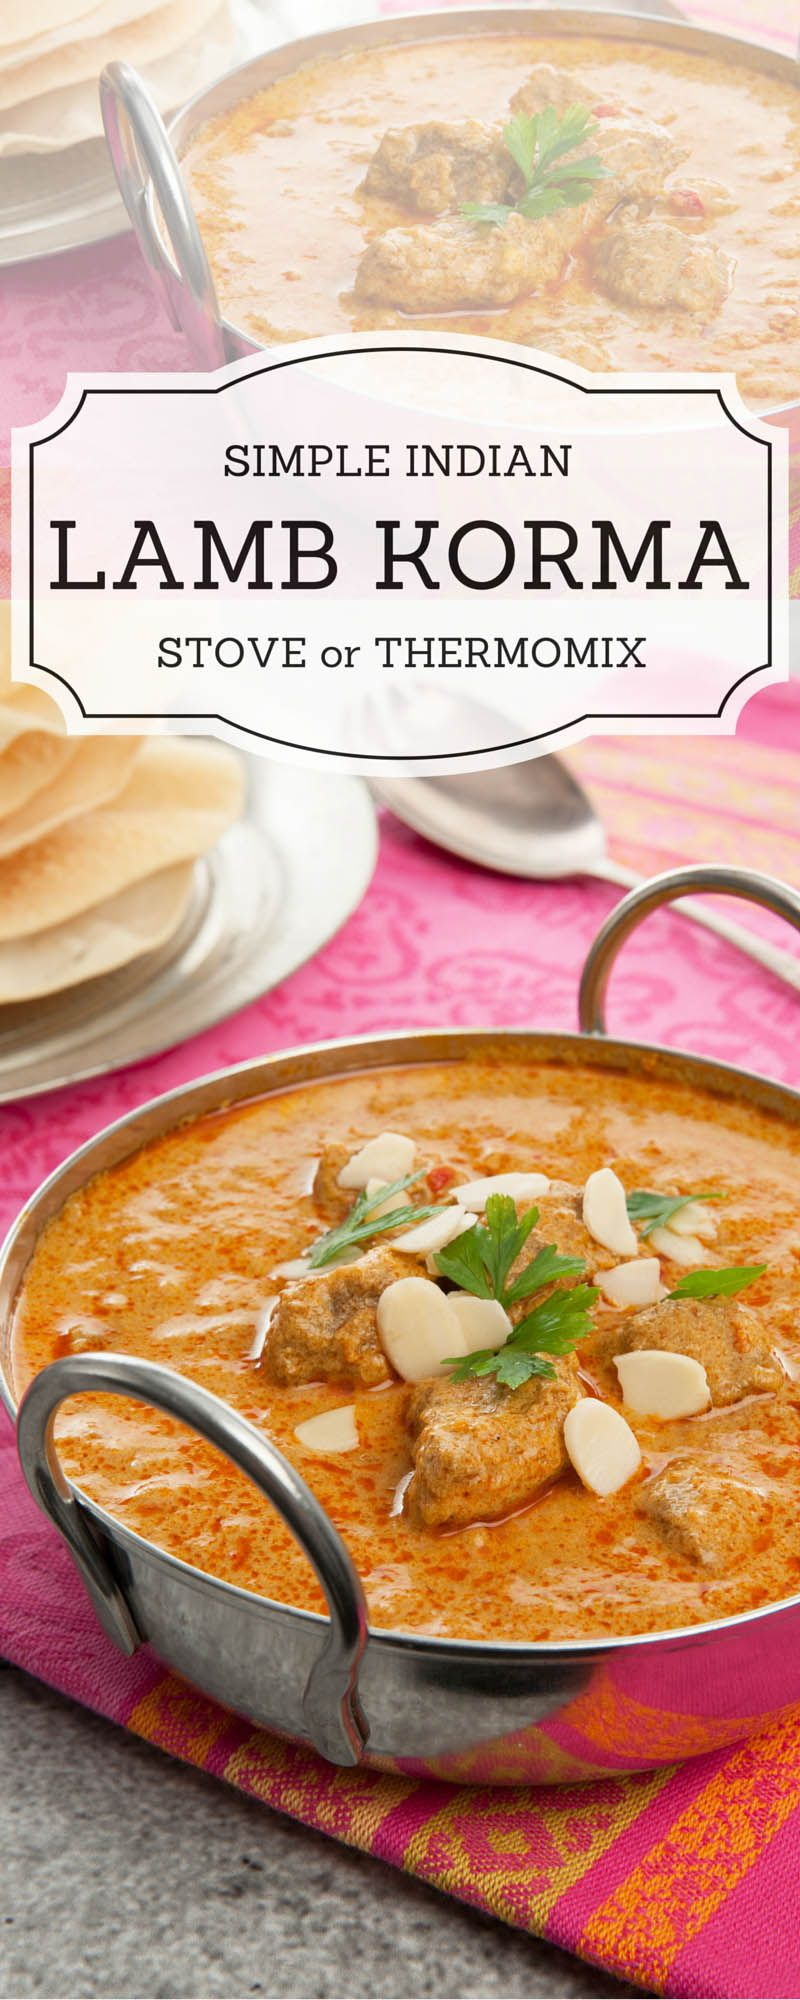 Delicious Indian Lamb Korma Curry Made From A Simple Authentic Recipe This Thermomix Variation For Thermokitchen Cookbook